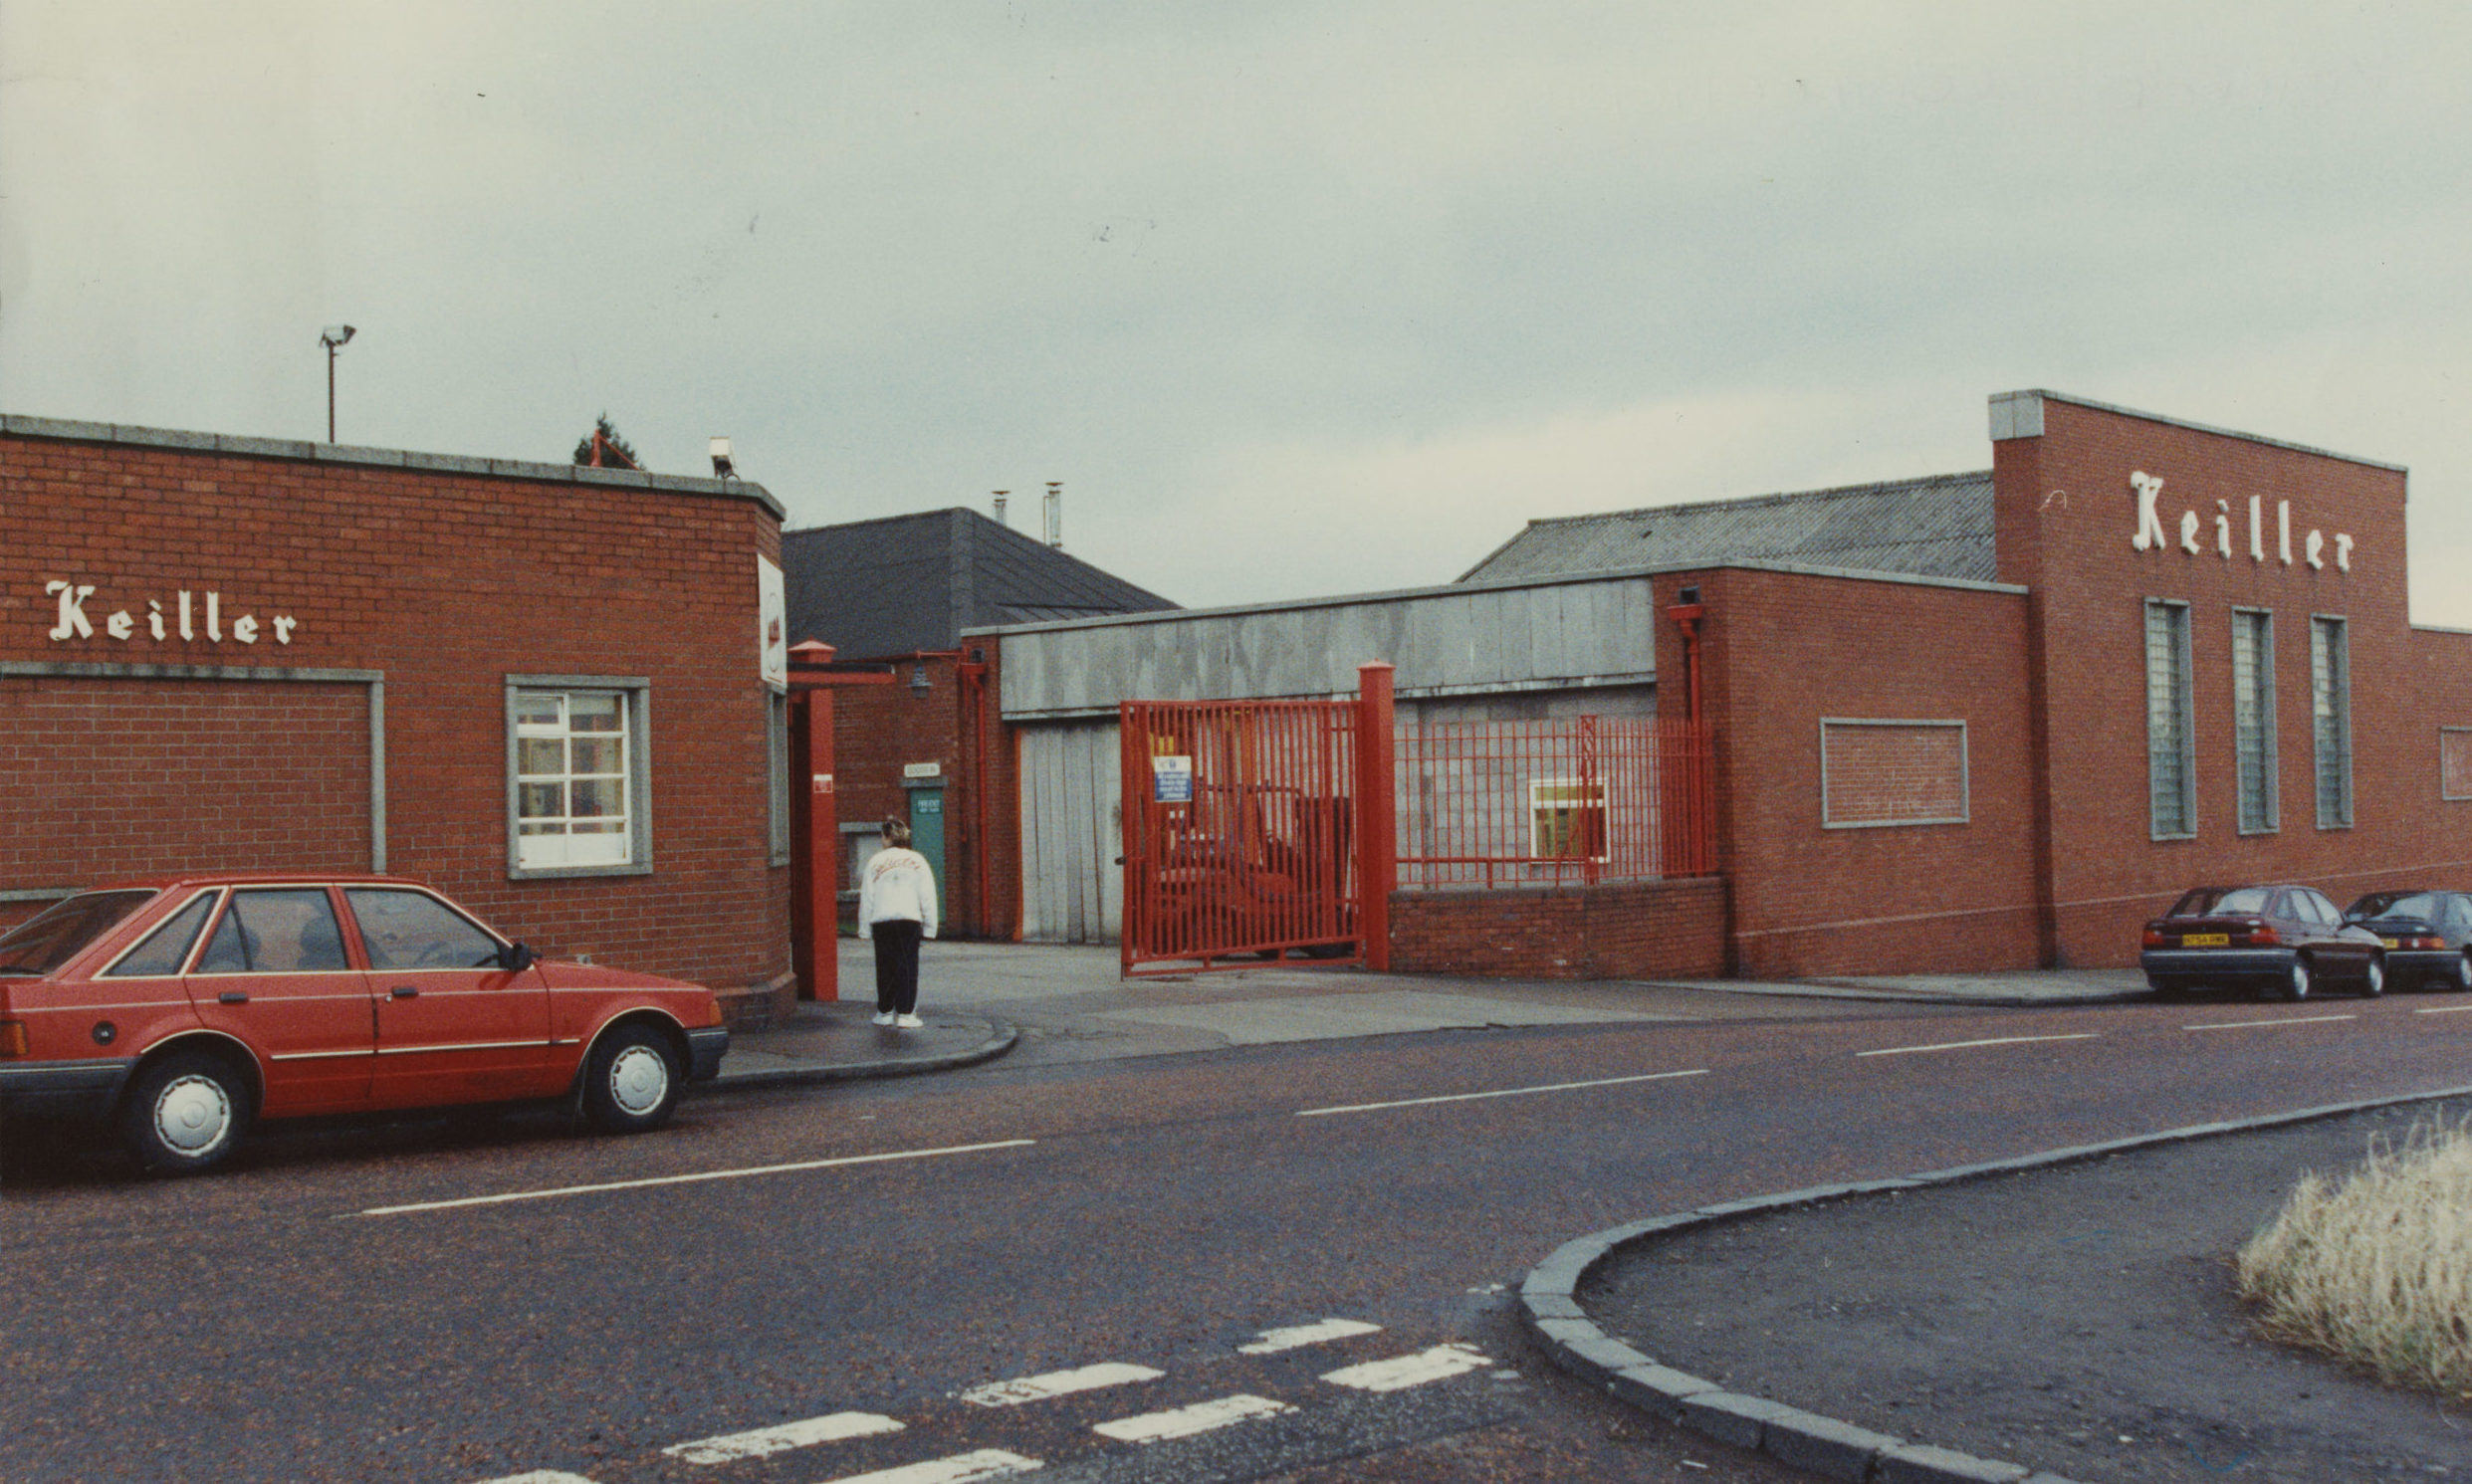 The front gates of James Keiller & Sons Ltd confectionery factory, Mains Loan, Dundee, on January 6 1992.